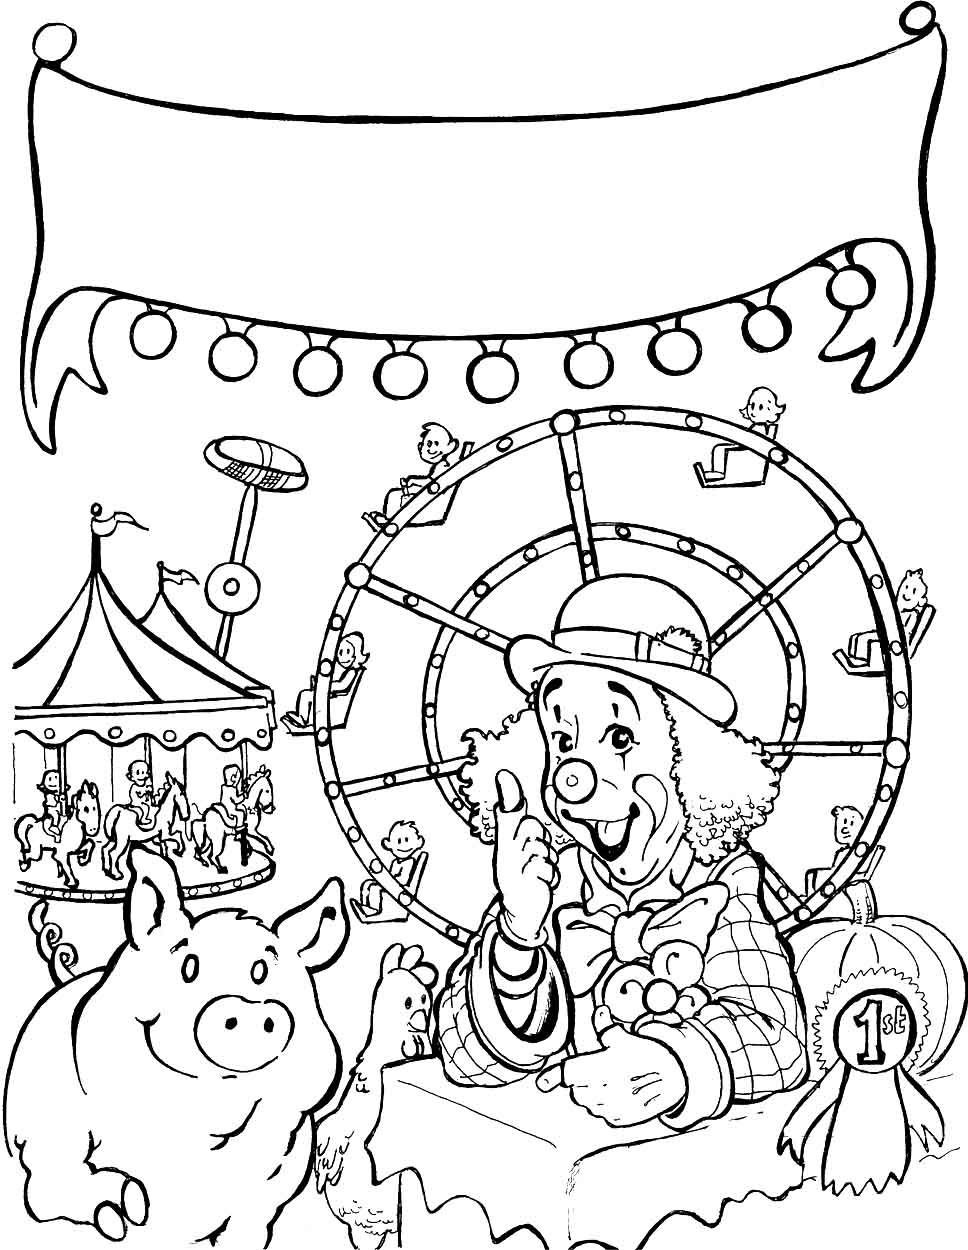 coloring page websites charlottes web coloring pages coloring pages for children page websites coloring